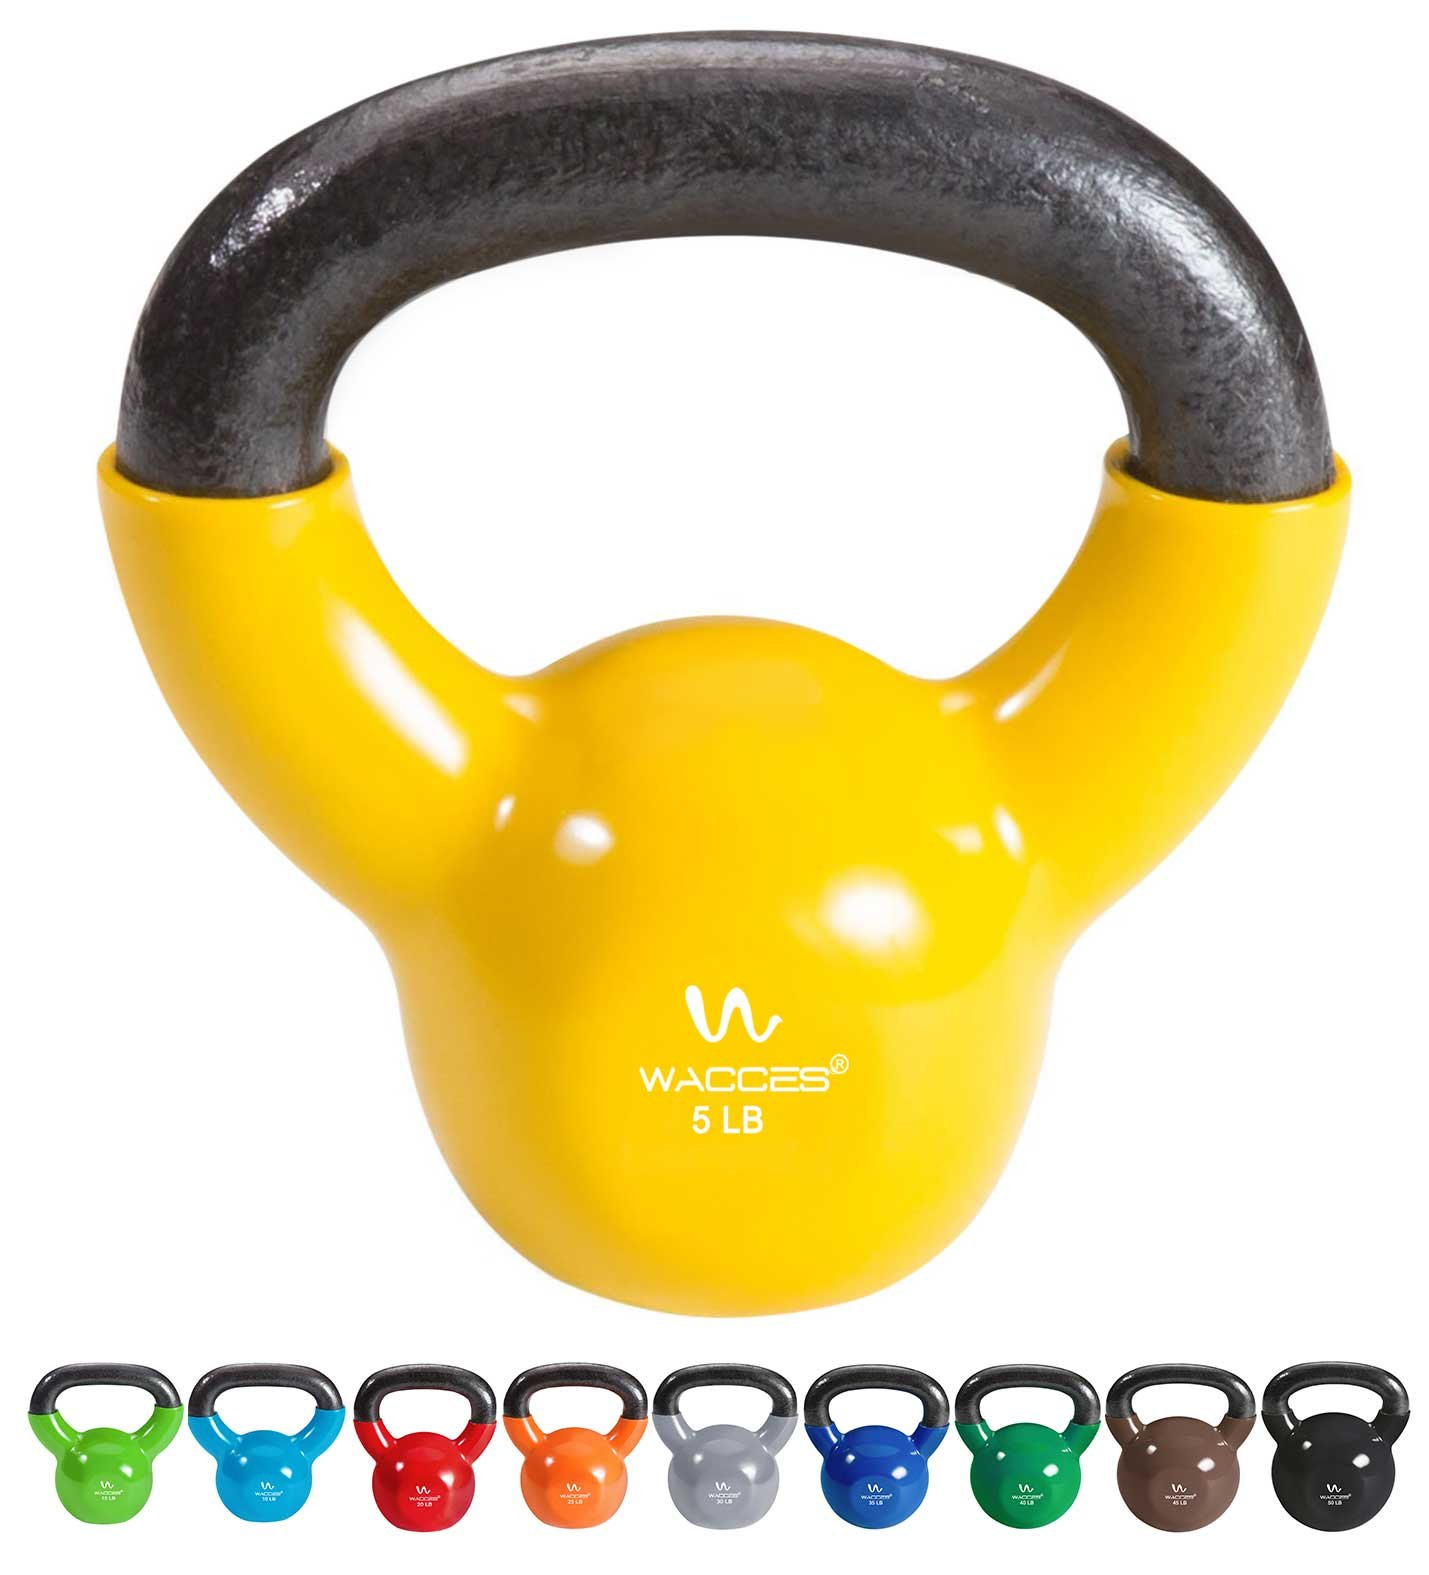 Wacces Single Vinyl Dipped Kettlebell for Croos Training, Home Exercise, Workout 5LB